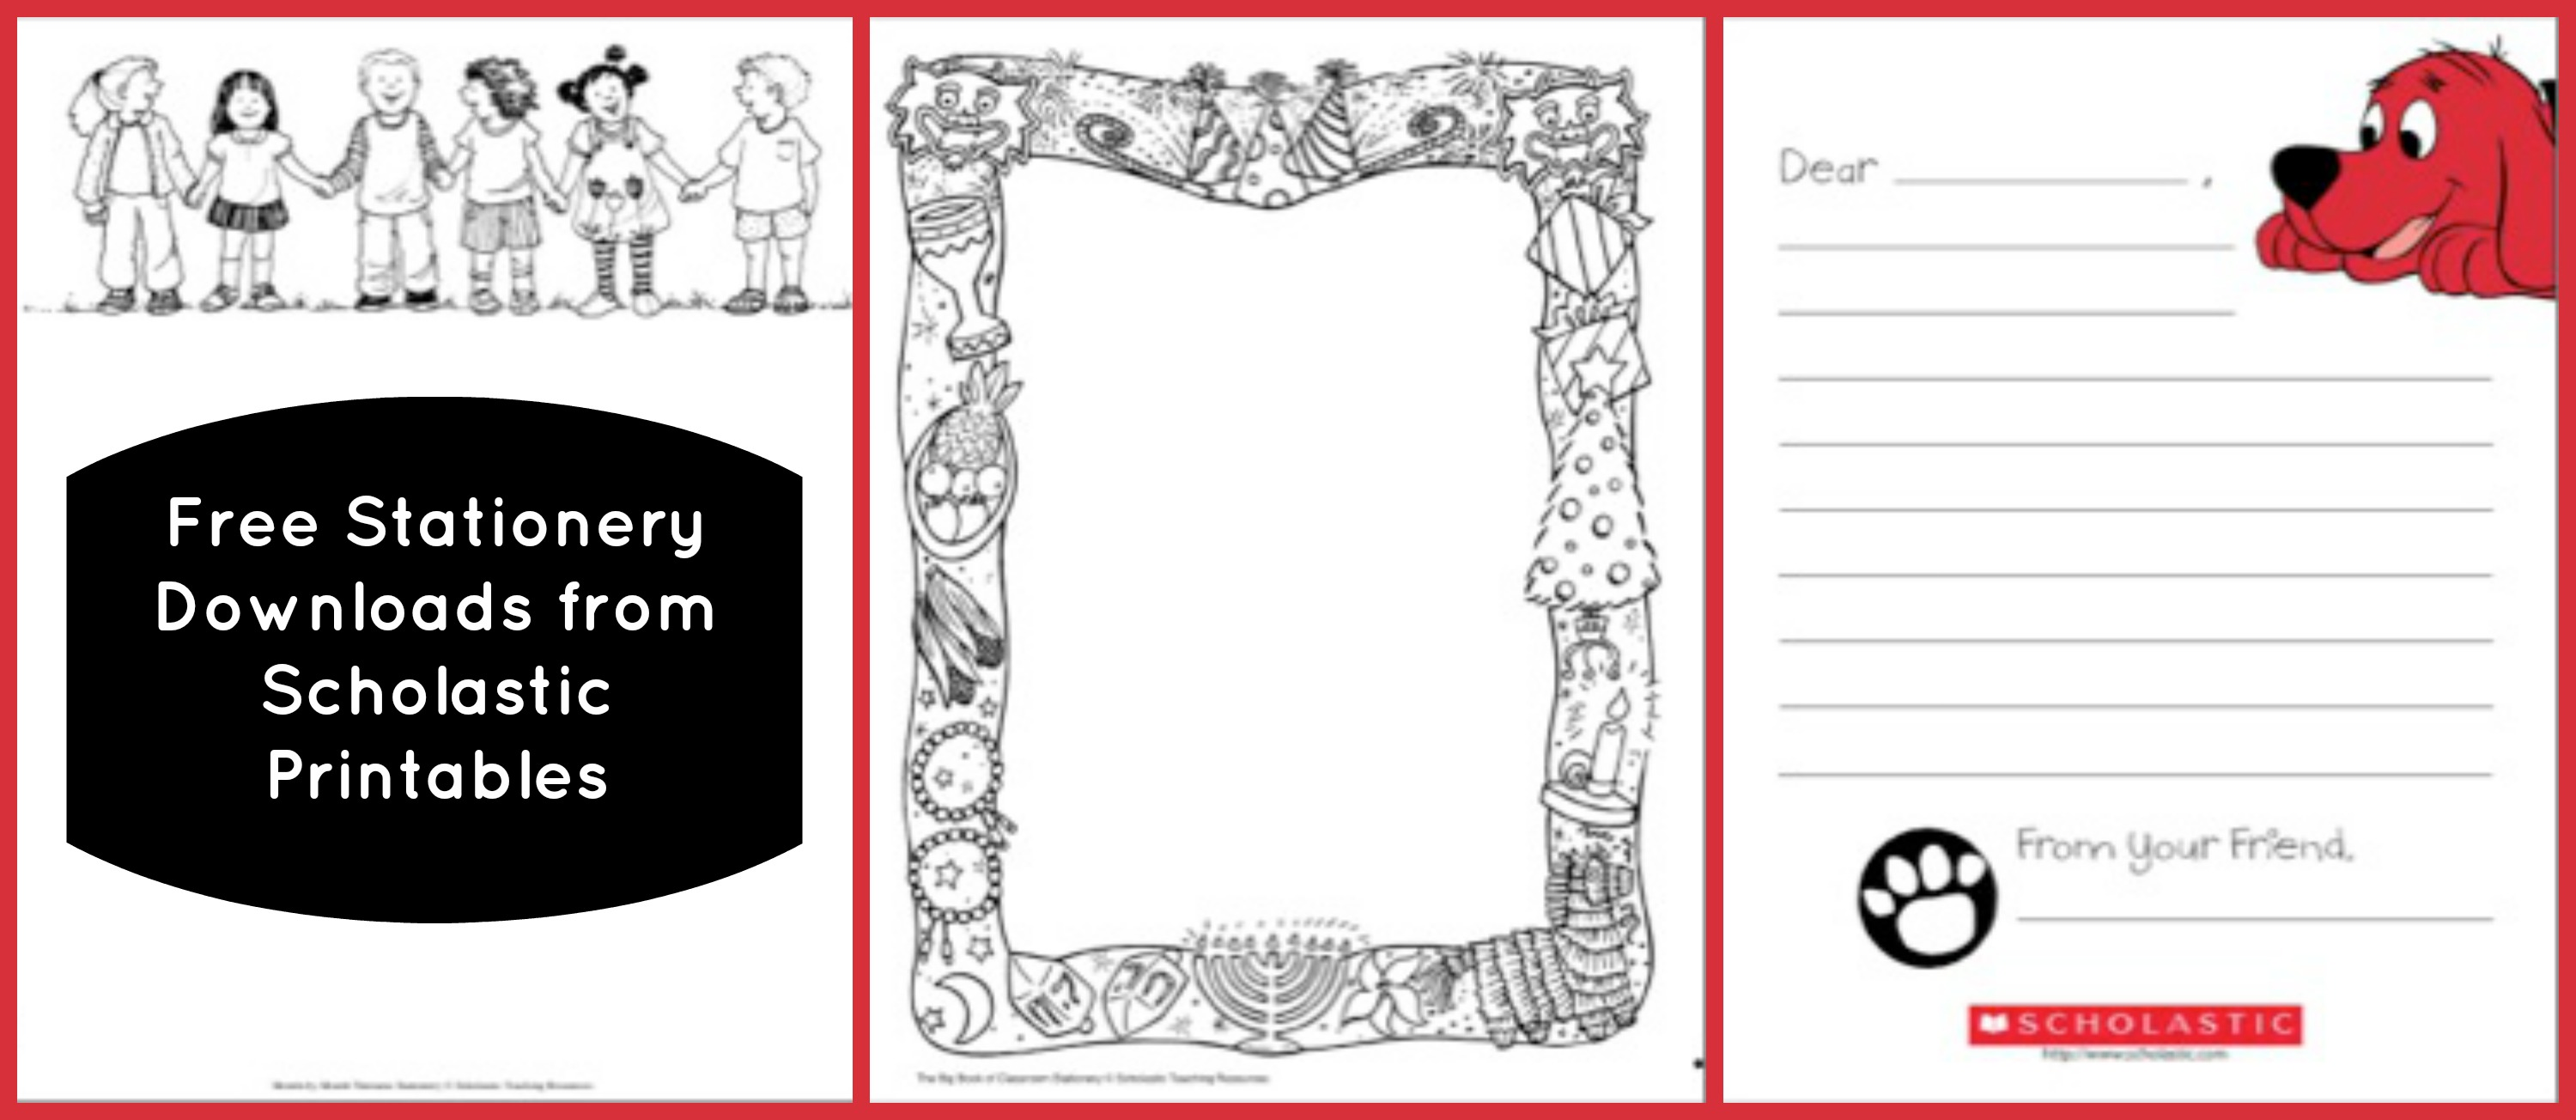 Scholastic Printables - Resources at Your Fingertips